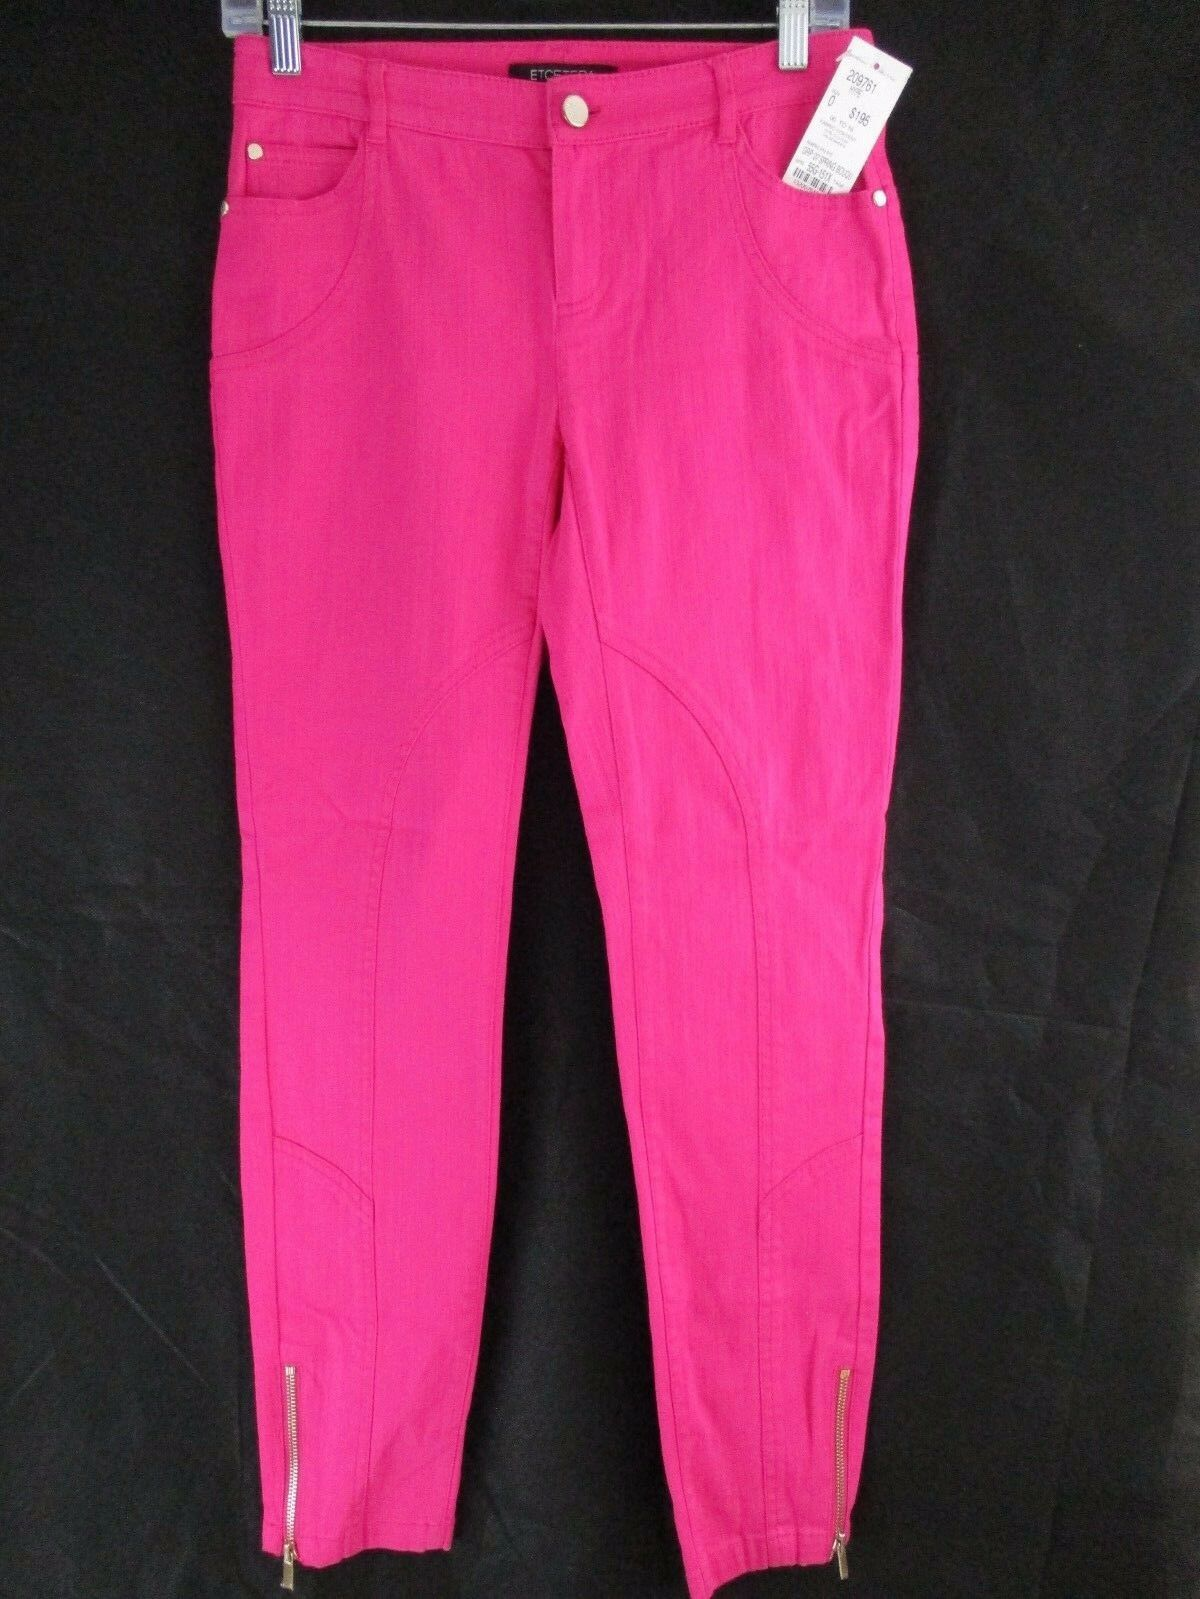 ETCETERA WOMEN'S PASSION PINK MARILYN FIT PANTS SIZE  0     F1